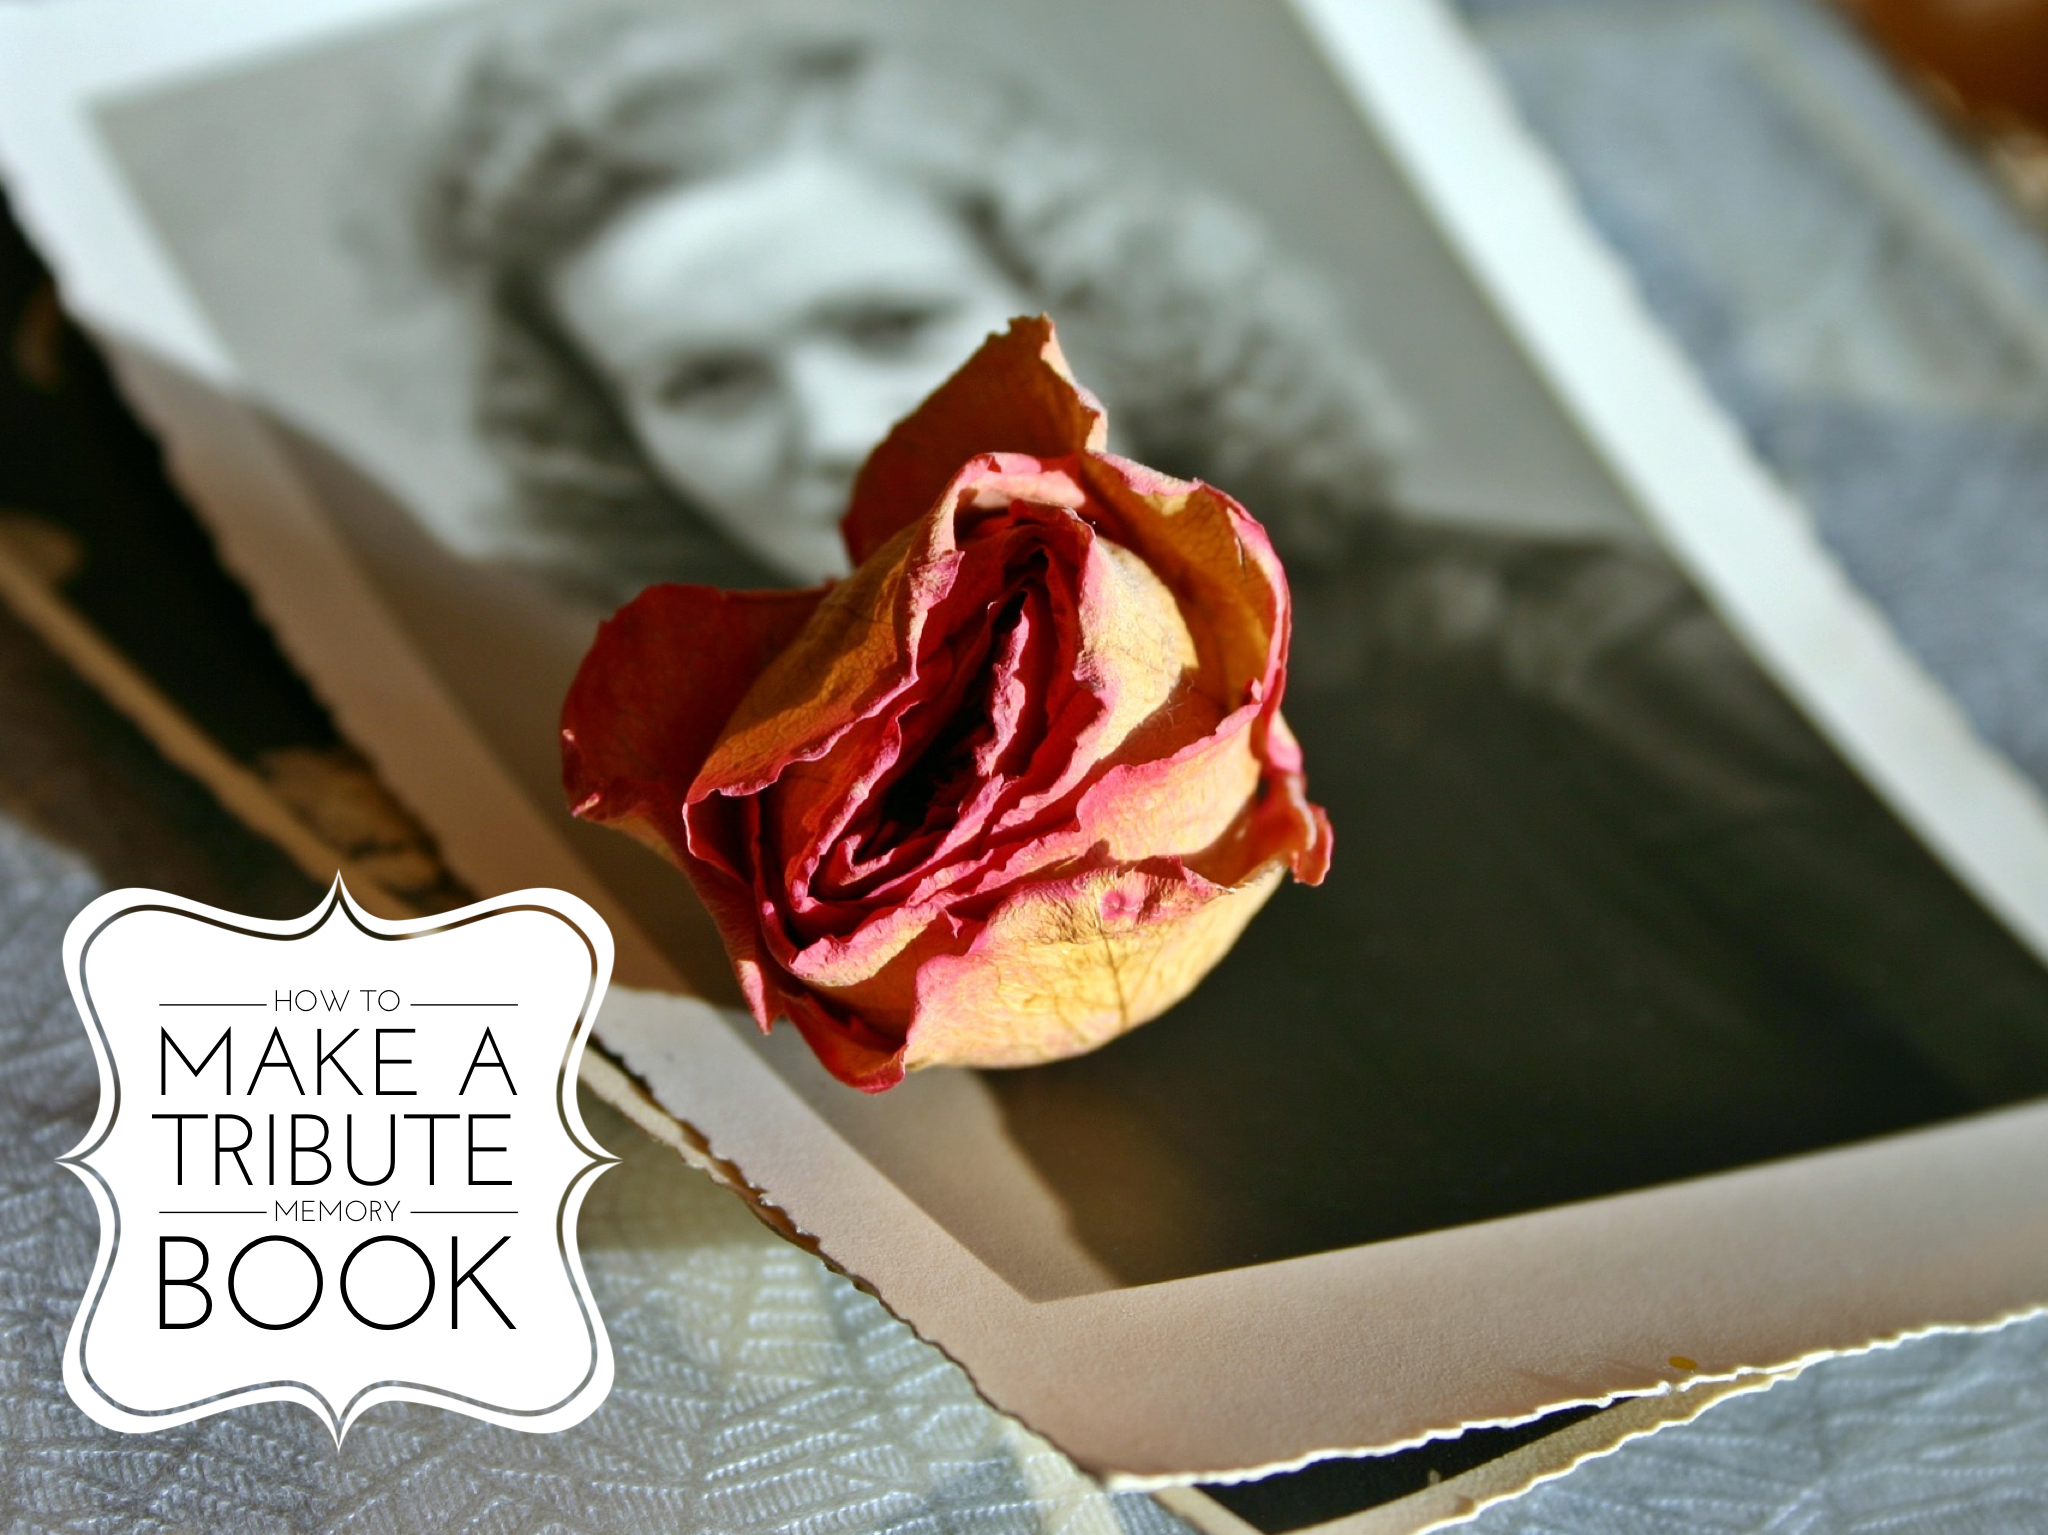 5 easy steps for how to honor a loved one who has died in an heirloom book